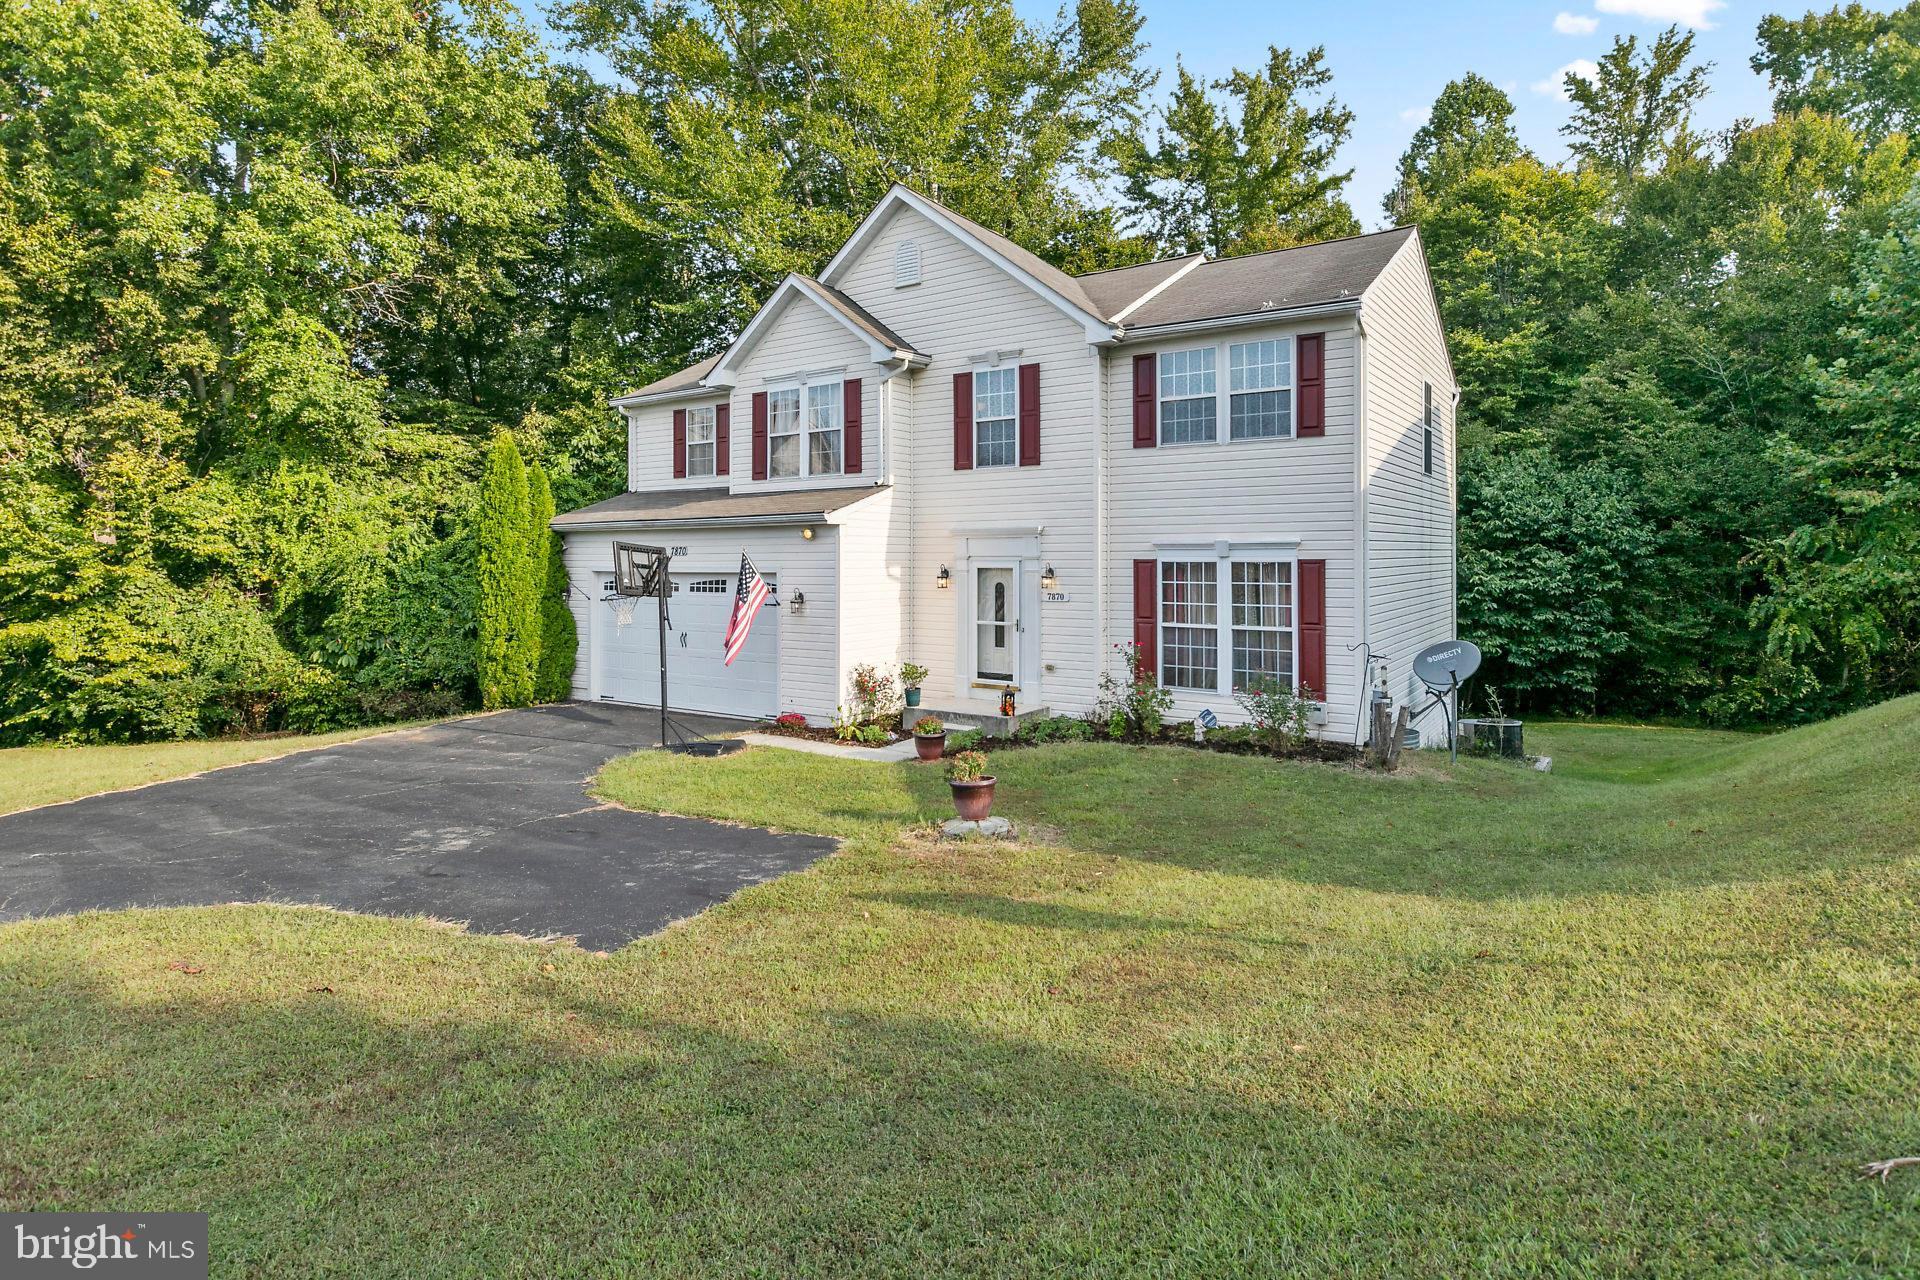 JUST REDUCED, GET YOUR OFFER IN SOON!Charming 2 story: offers 5 large BR's on 2nd level, 2.5 baths & rough-in in the unfinished basement. Sunroom w/skylights offers seasonal living. Trex & vinyl deck off of the sunroom.  Backs to woods, house is located at end of cul-de-sac. Main level offers office w/barn doors, this room can be  restored to the original dining room. New kitchen appliances: flat top stove, refrigerator, garbage disposal & new tile floor.  Kitchen also has cherry cabinets  & 9' ceiling.  Enjoy family living by the wood burning FP.  This home offers upgraded lighting & ceiling fans.  Family room off kitchen has cherry bamboo flooring.  Exterior offers gutter Helmet guards w/lifetime warranty!Great location for family in a great neighborhood: offers basketball courts, tennis courts & playground equipment.  End of cul-de-sac backing to woods;  unfinished basement w/walkout to rear.   There's room for everyone!  Close to Chesapeake Beach & boardwalk!